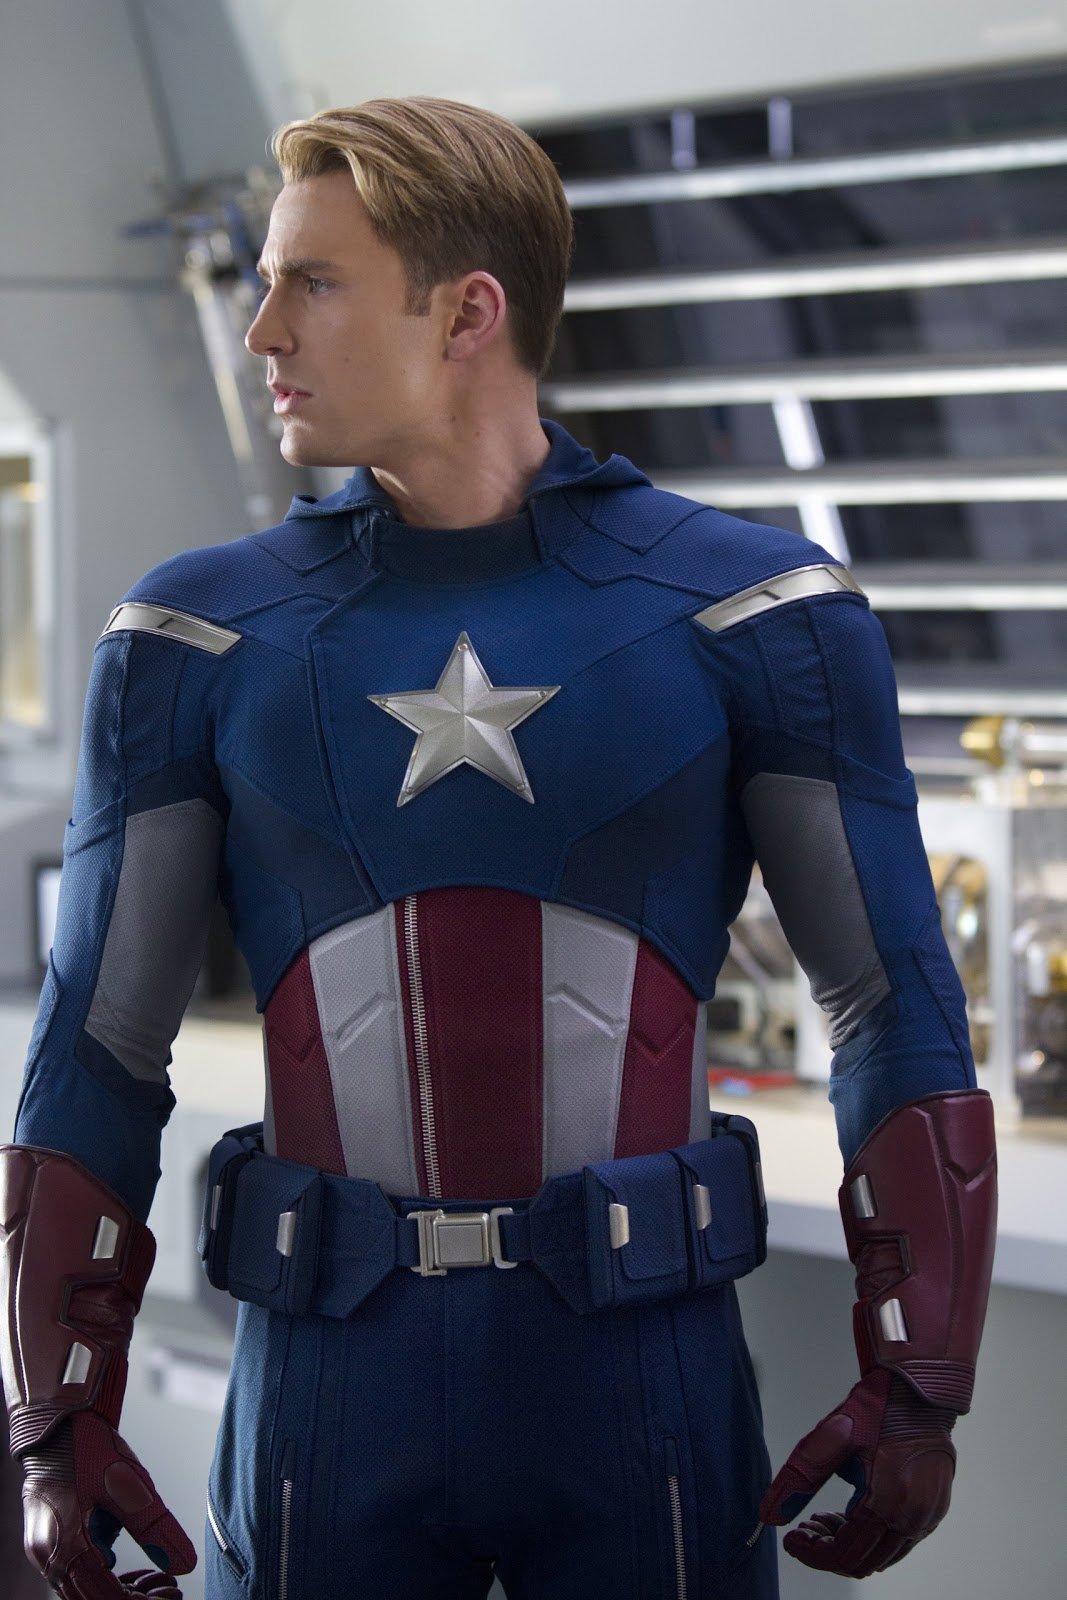 MOVIE HYPE SA: CAPTAIN AMERICA: THE WINTER SOLDIER (Evans ...